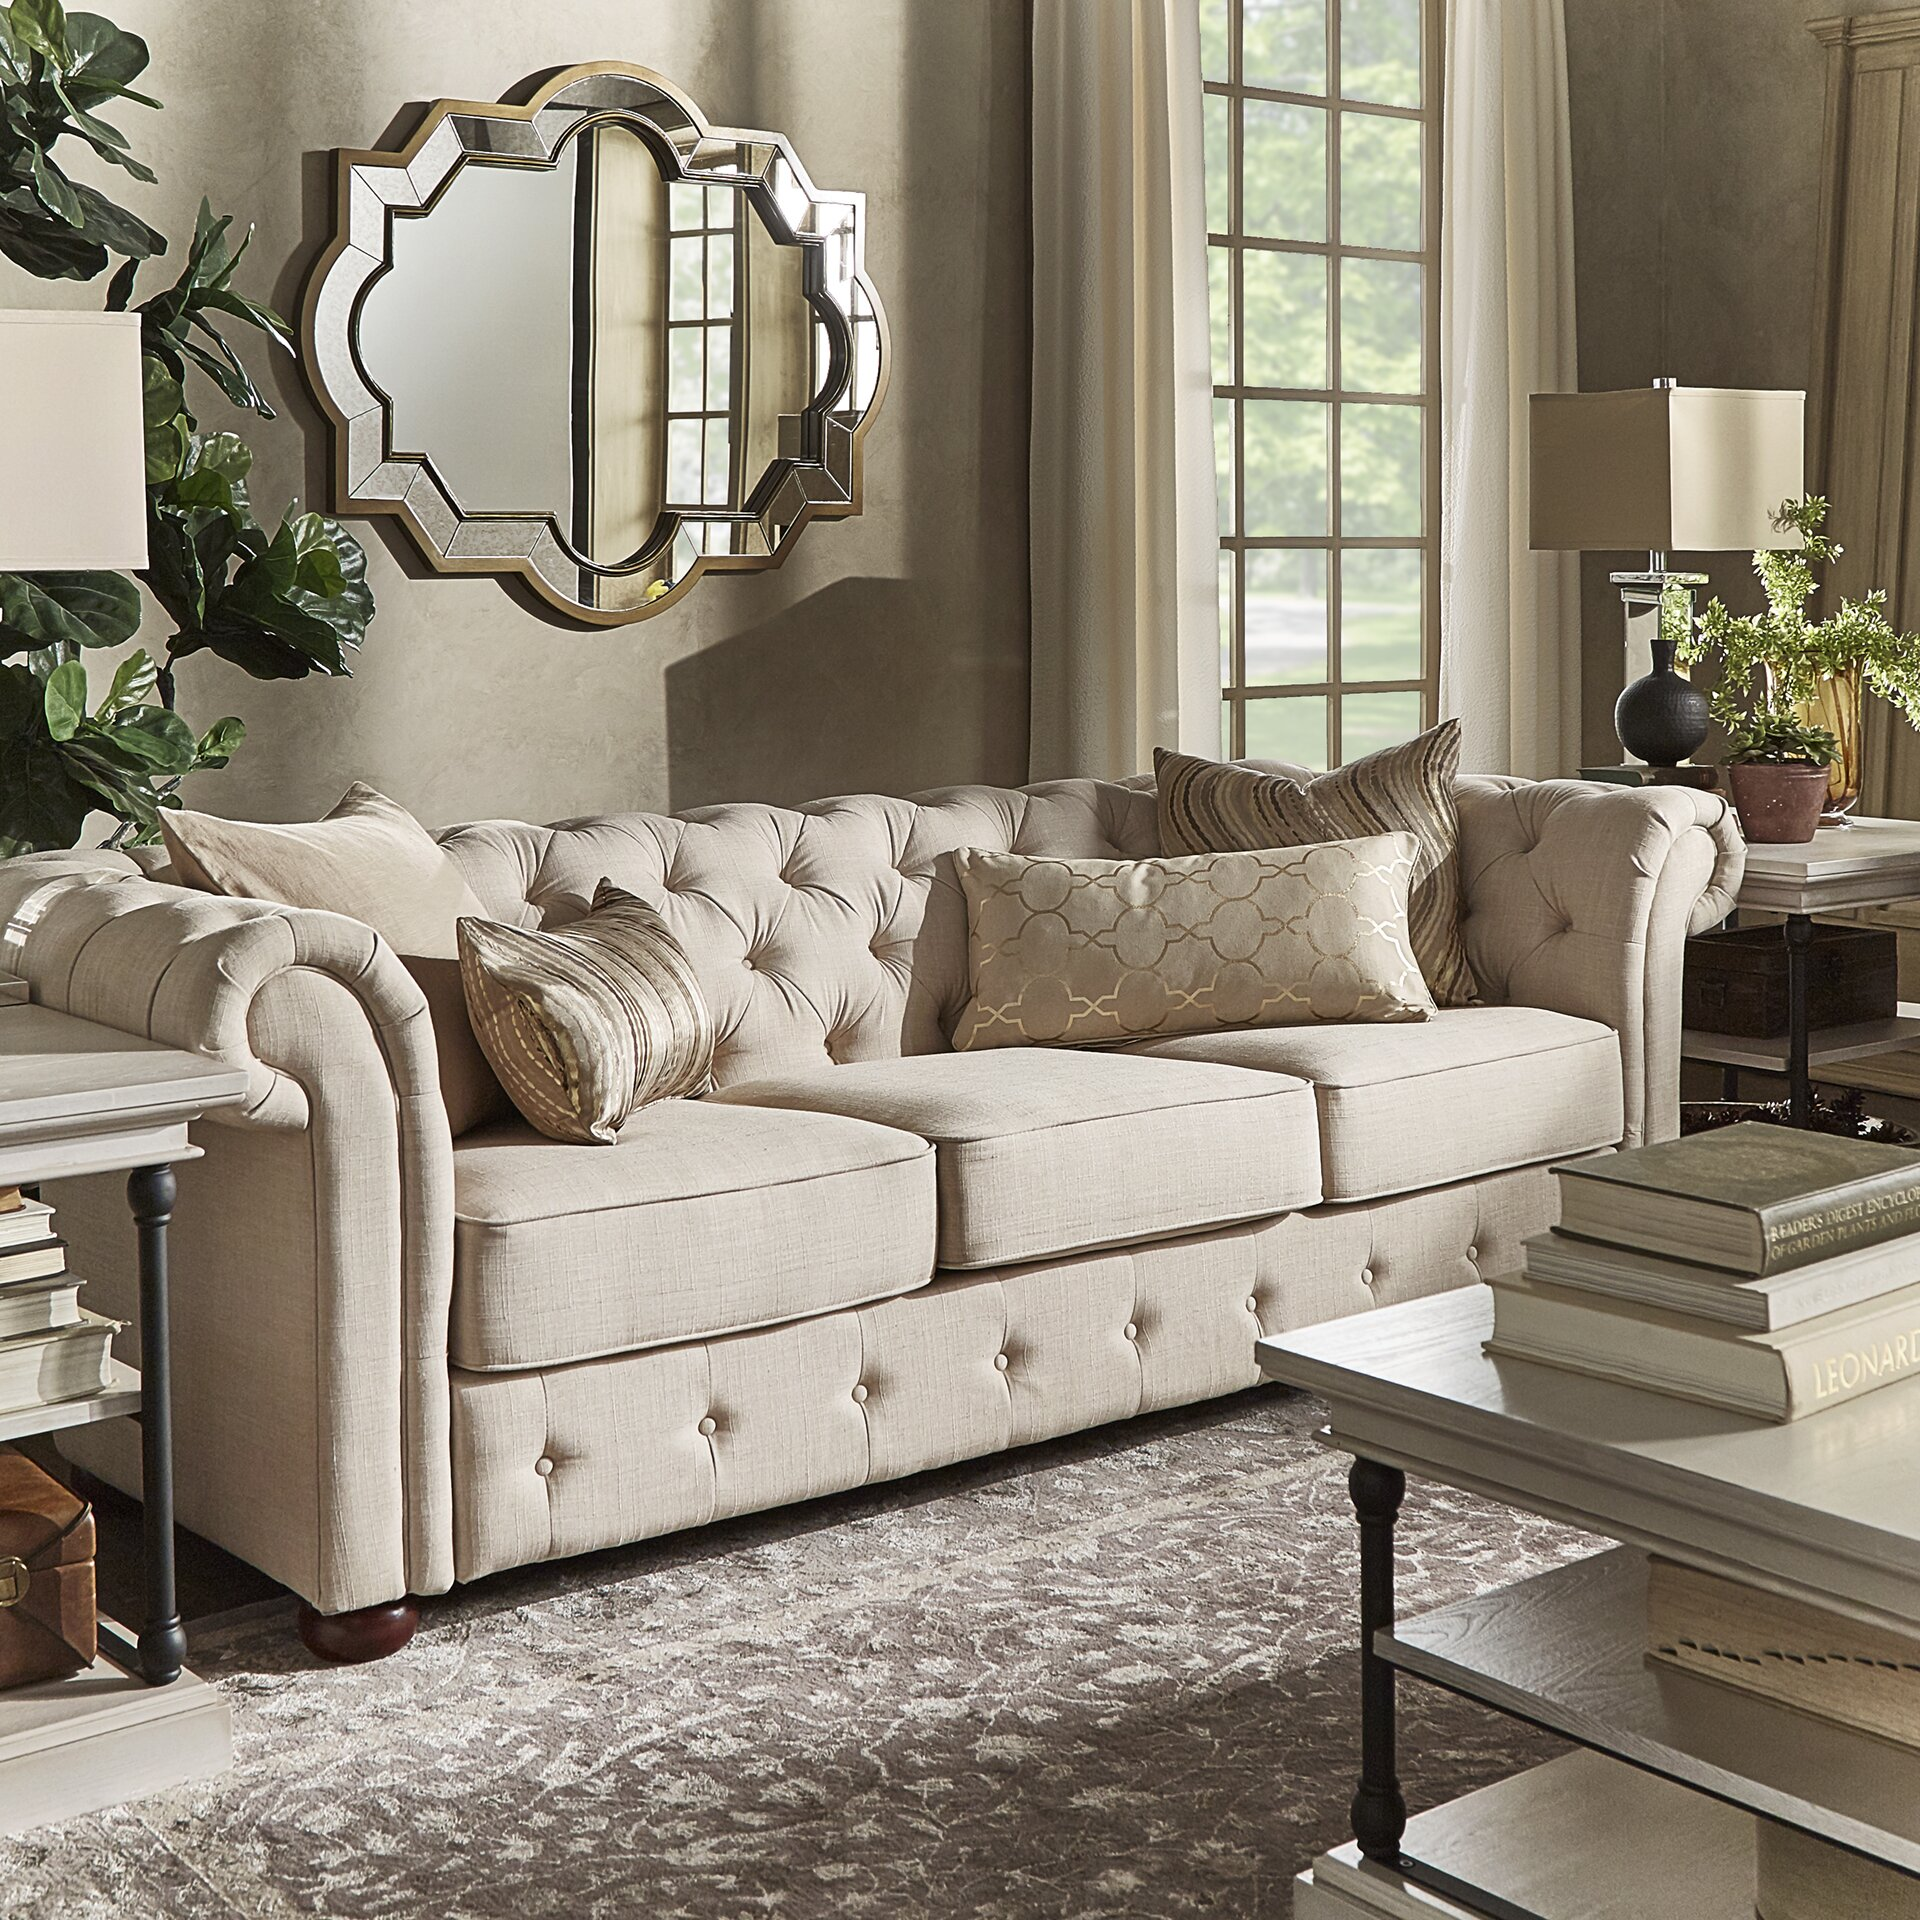 Tufted Living Room Furniture Darby Home Co Toulon Tufted Button Sofa Reviews Wayfair